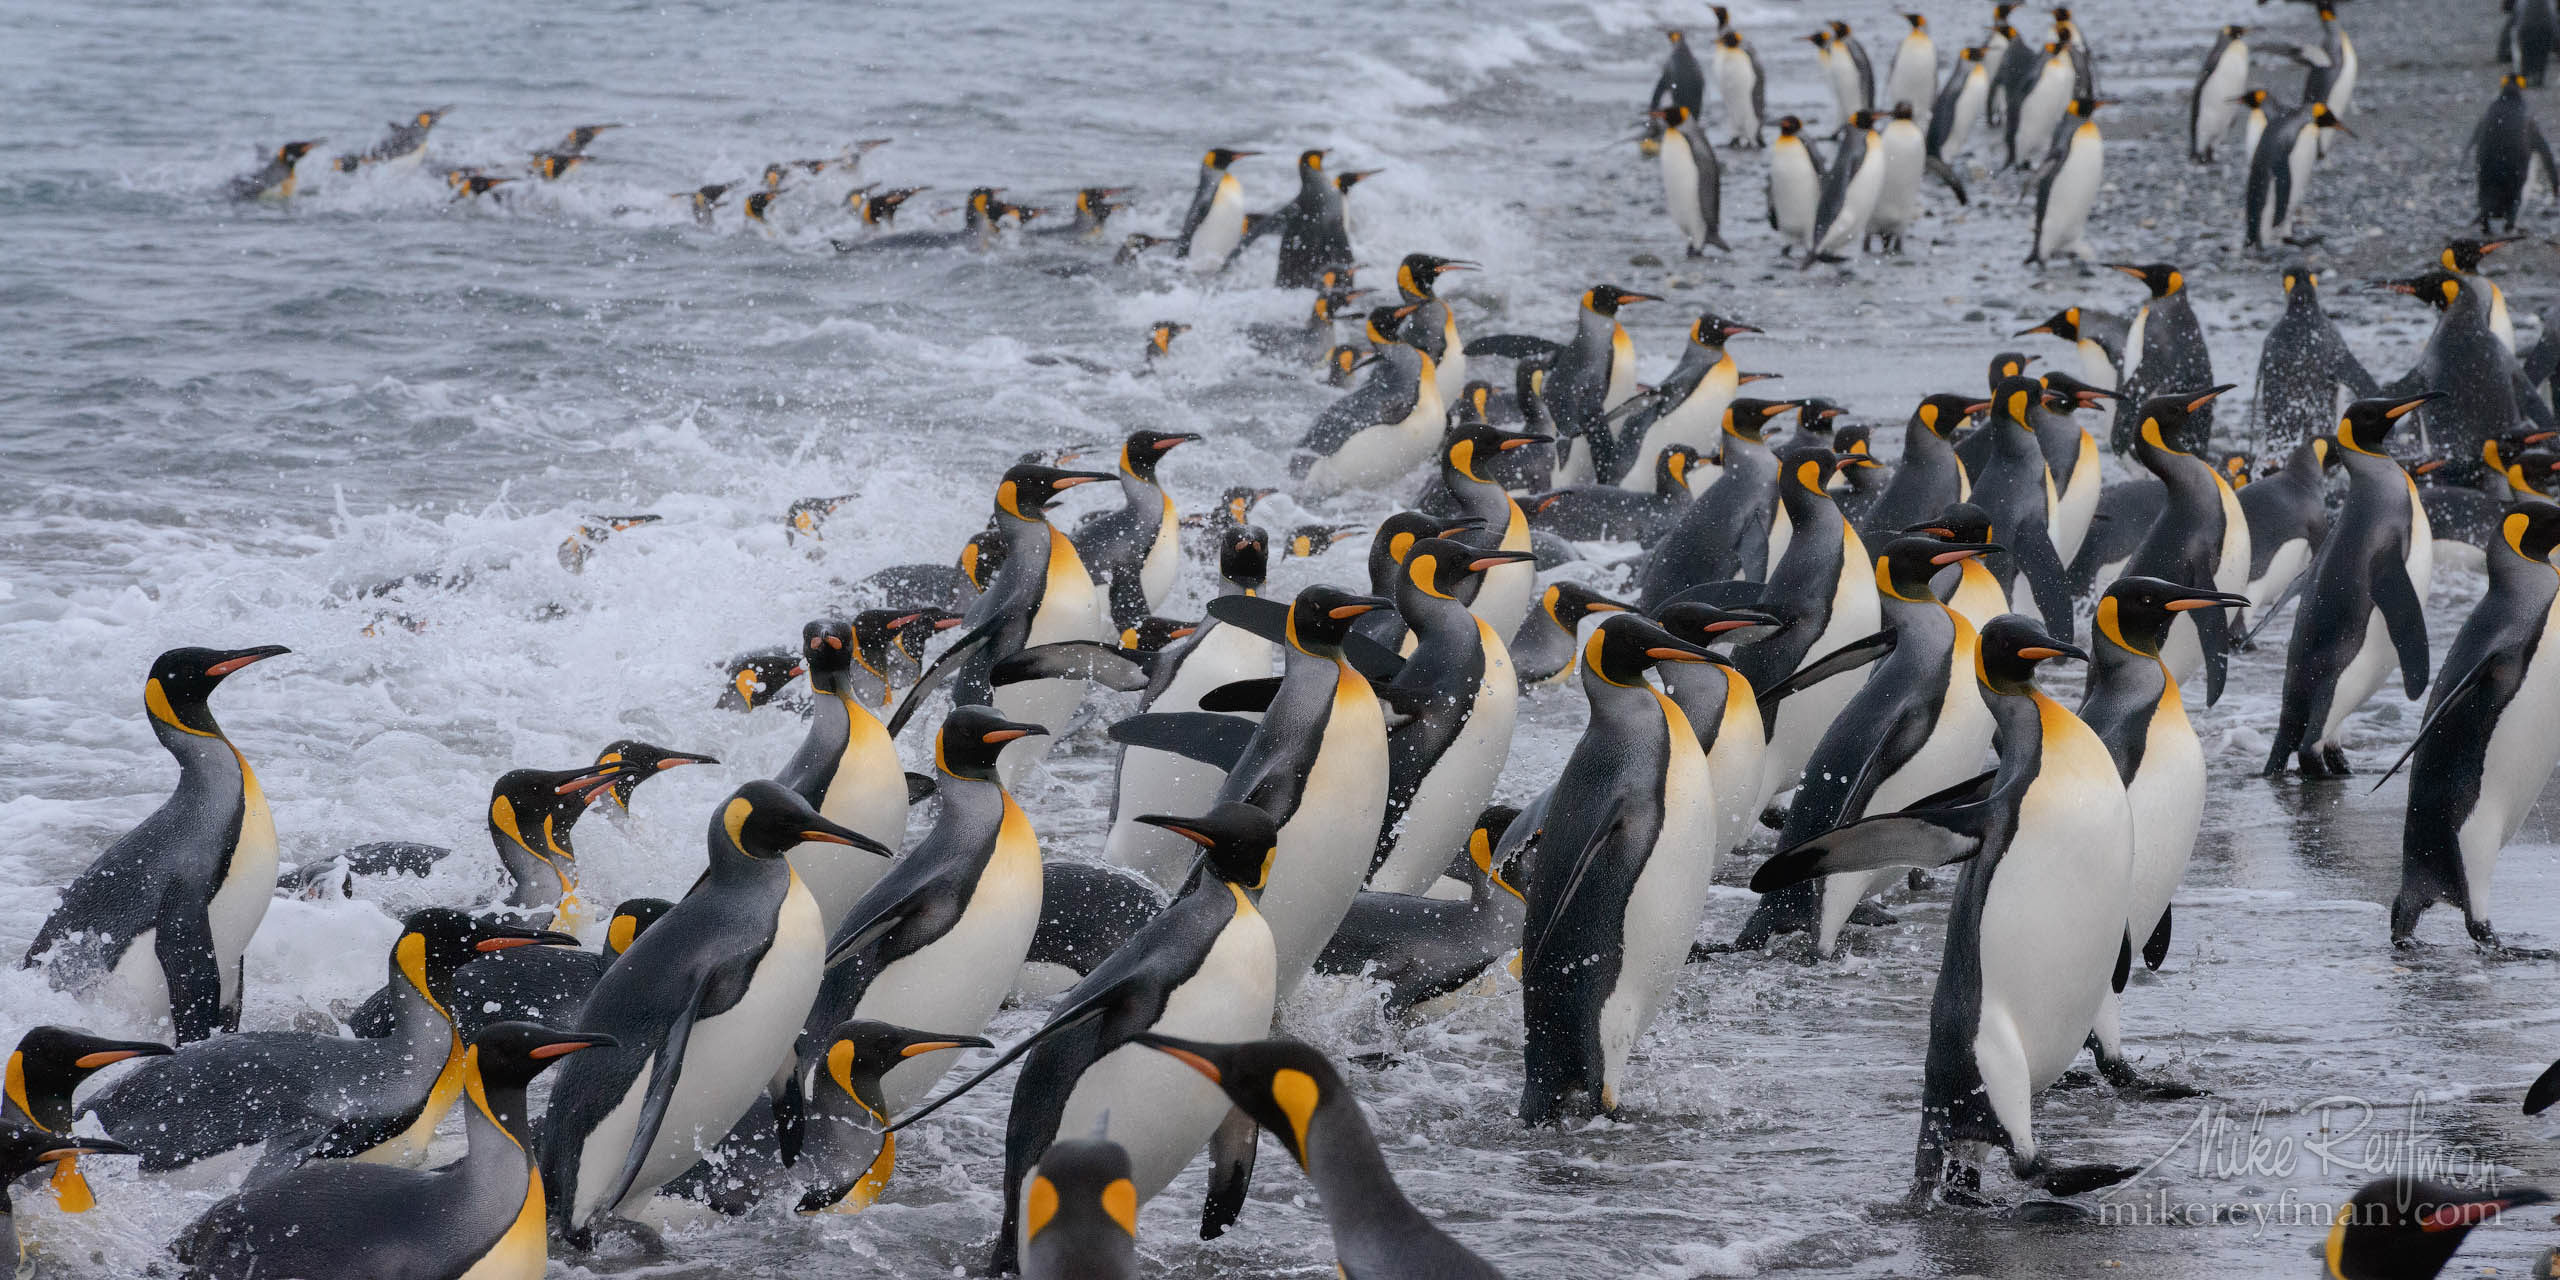 King Penguin (Aptenodytes patagonicus) crowding ashore after foraging at sea. Salisbury Plain, South Georgia Island, South Atlantic P12-MRD8E1966 - Selected panoramic images with 2:1 aspect ratio - Mike Reyfman Photography